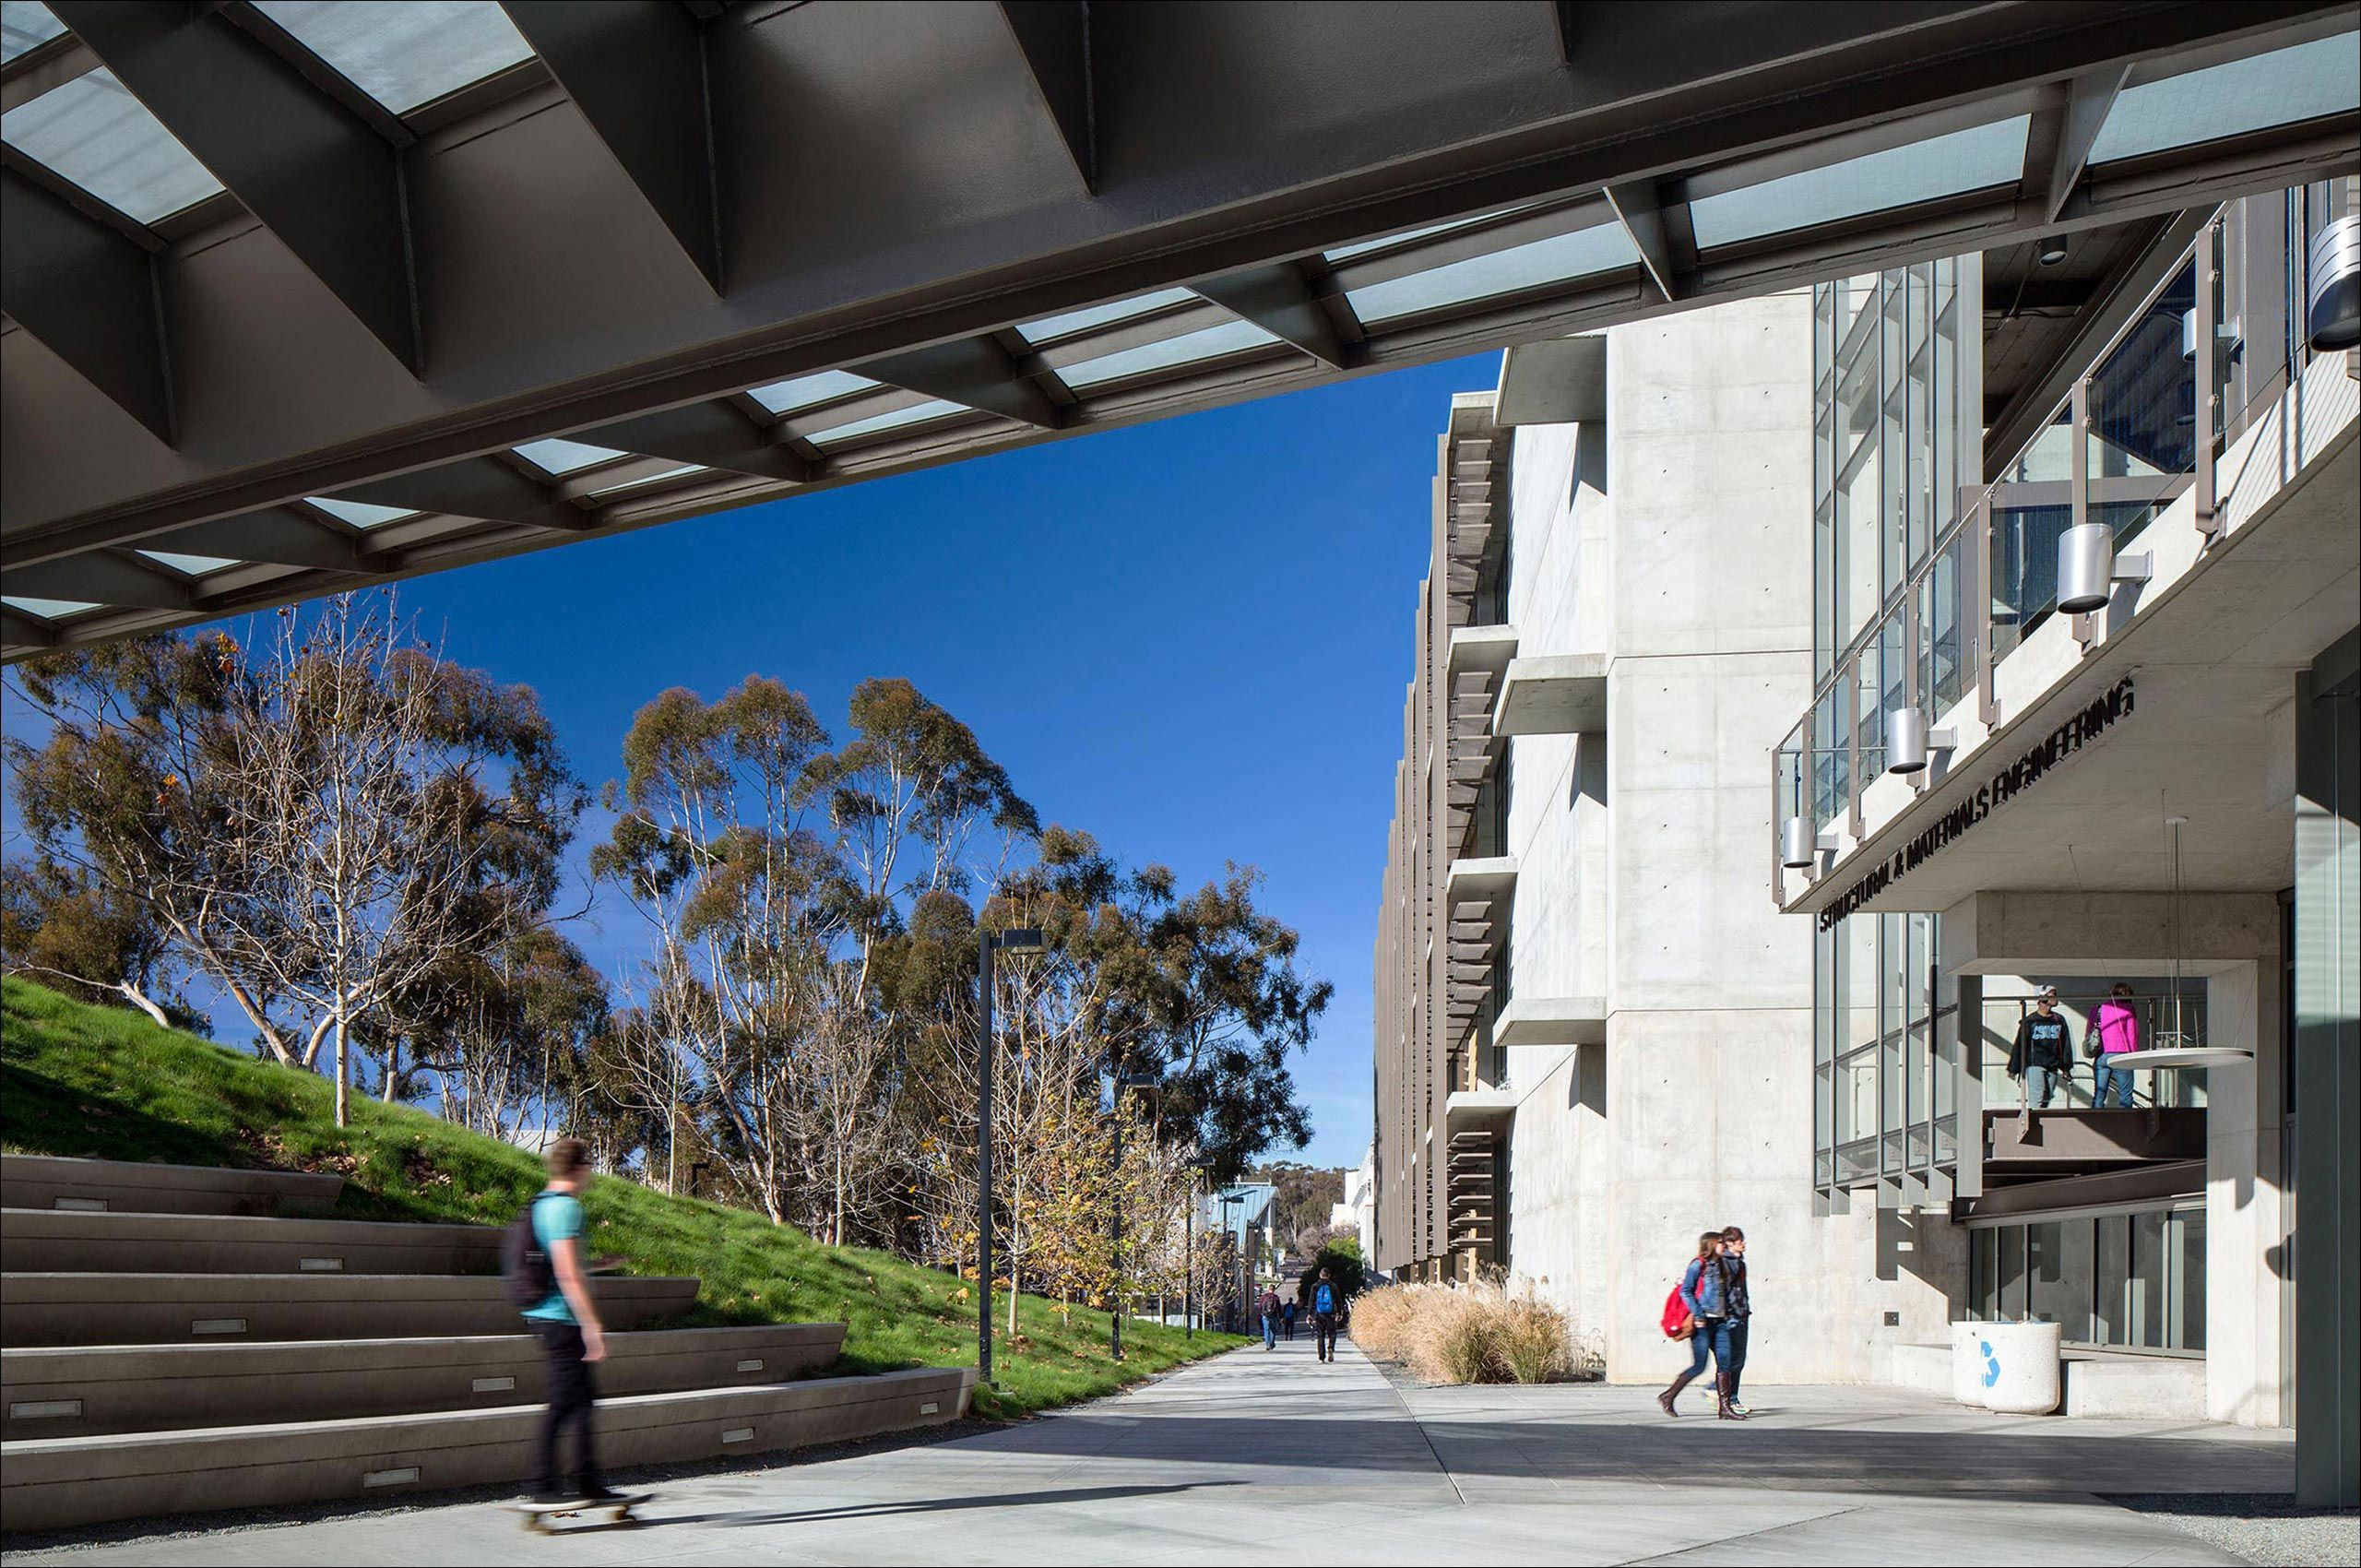 2_MillerHullArchitects_UCSanDiego_University_ArchitecturalPhotography.jpg